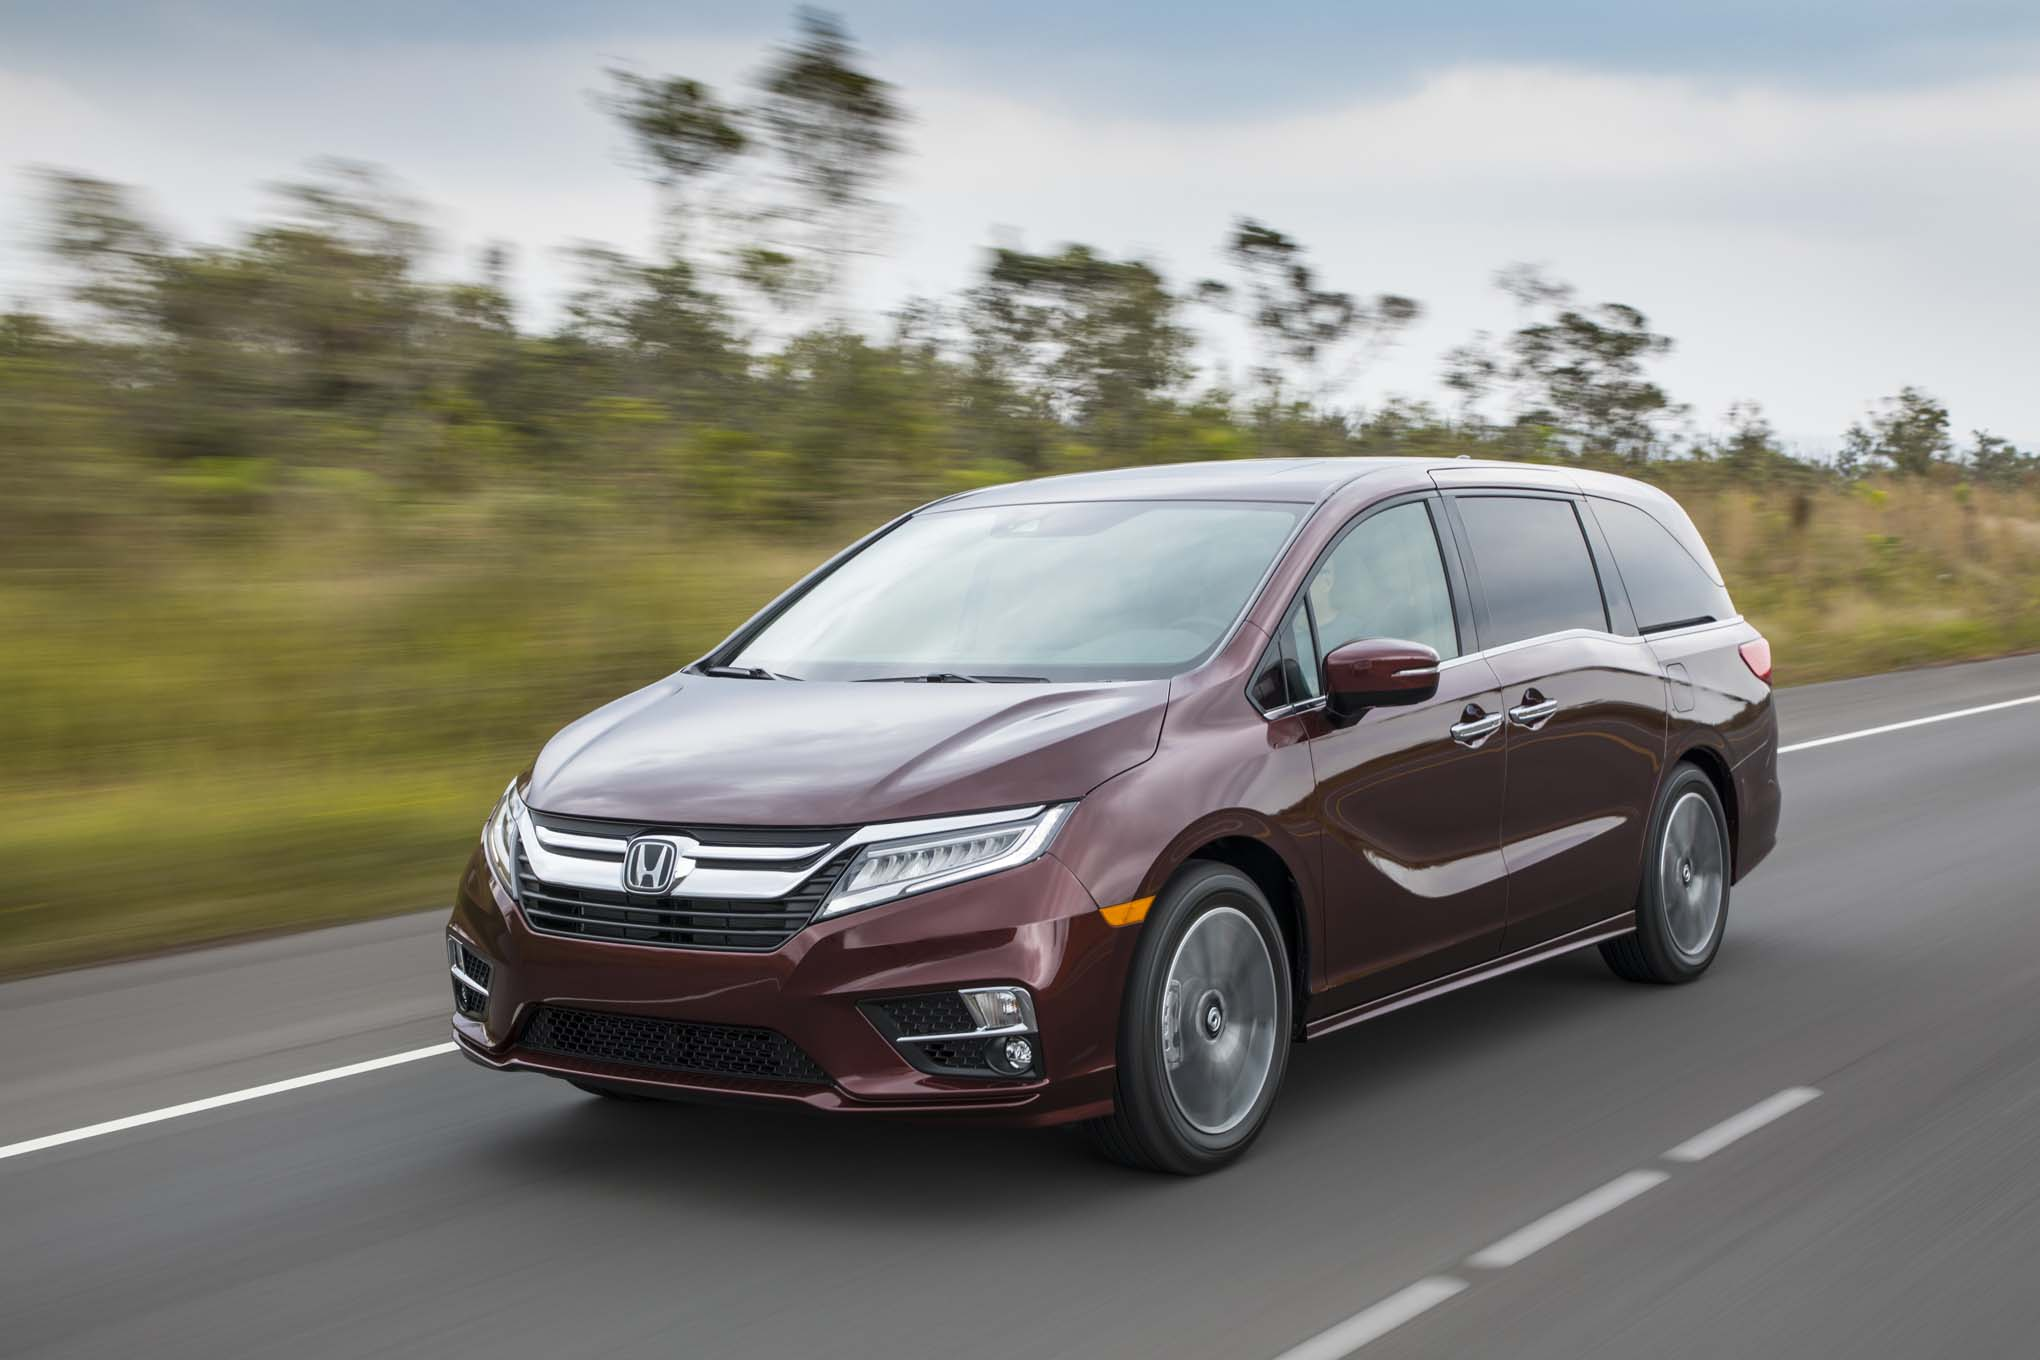 2018 Honda Odyssey Front Three Quarter In Motion 08